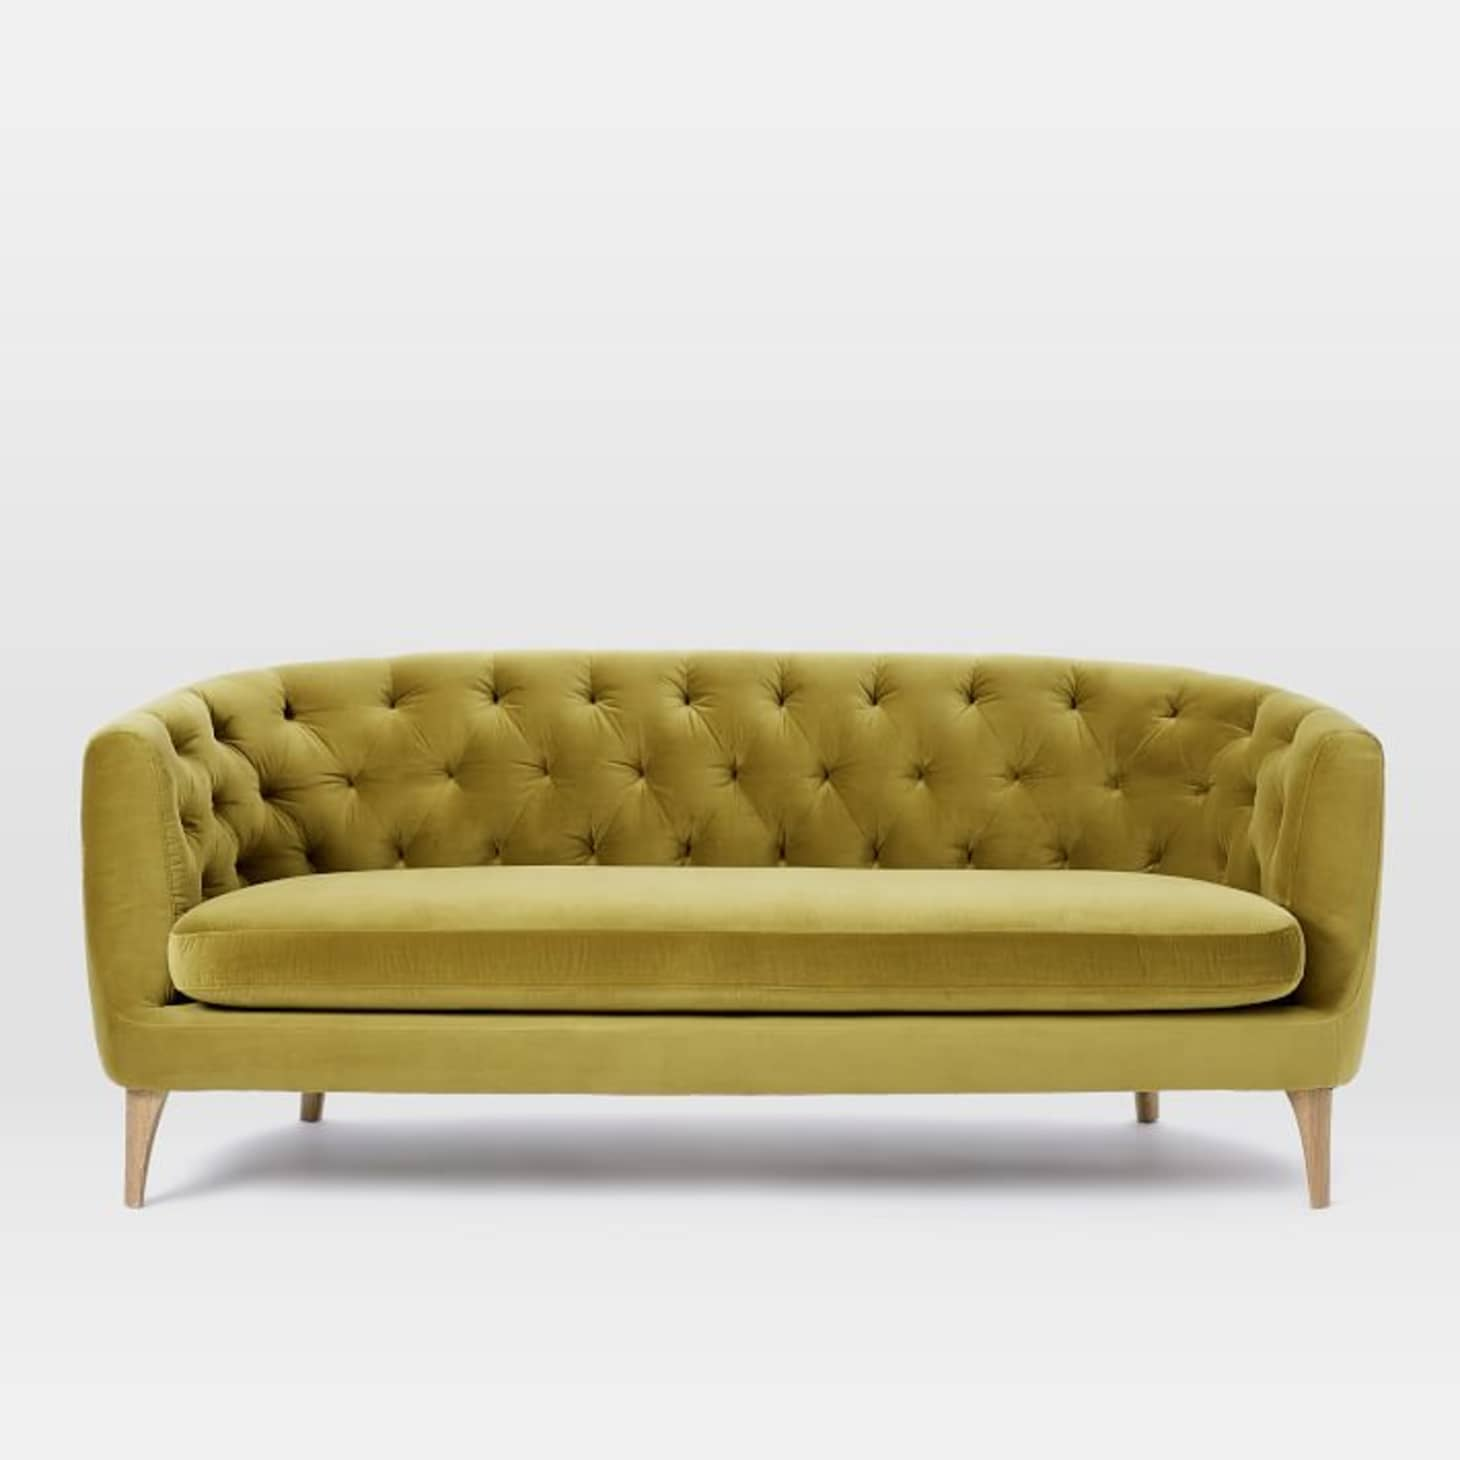 77b67532 The Most Comfortable Sofas at West Elm: Tested & Reviewed ...